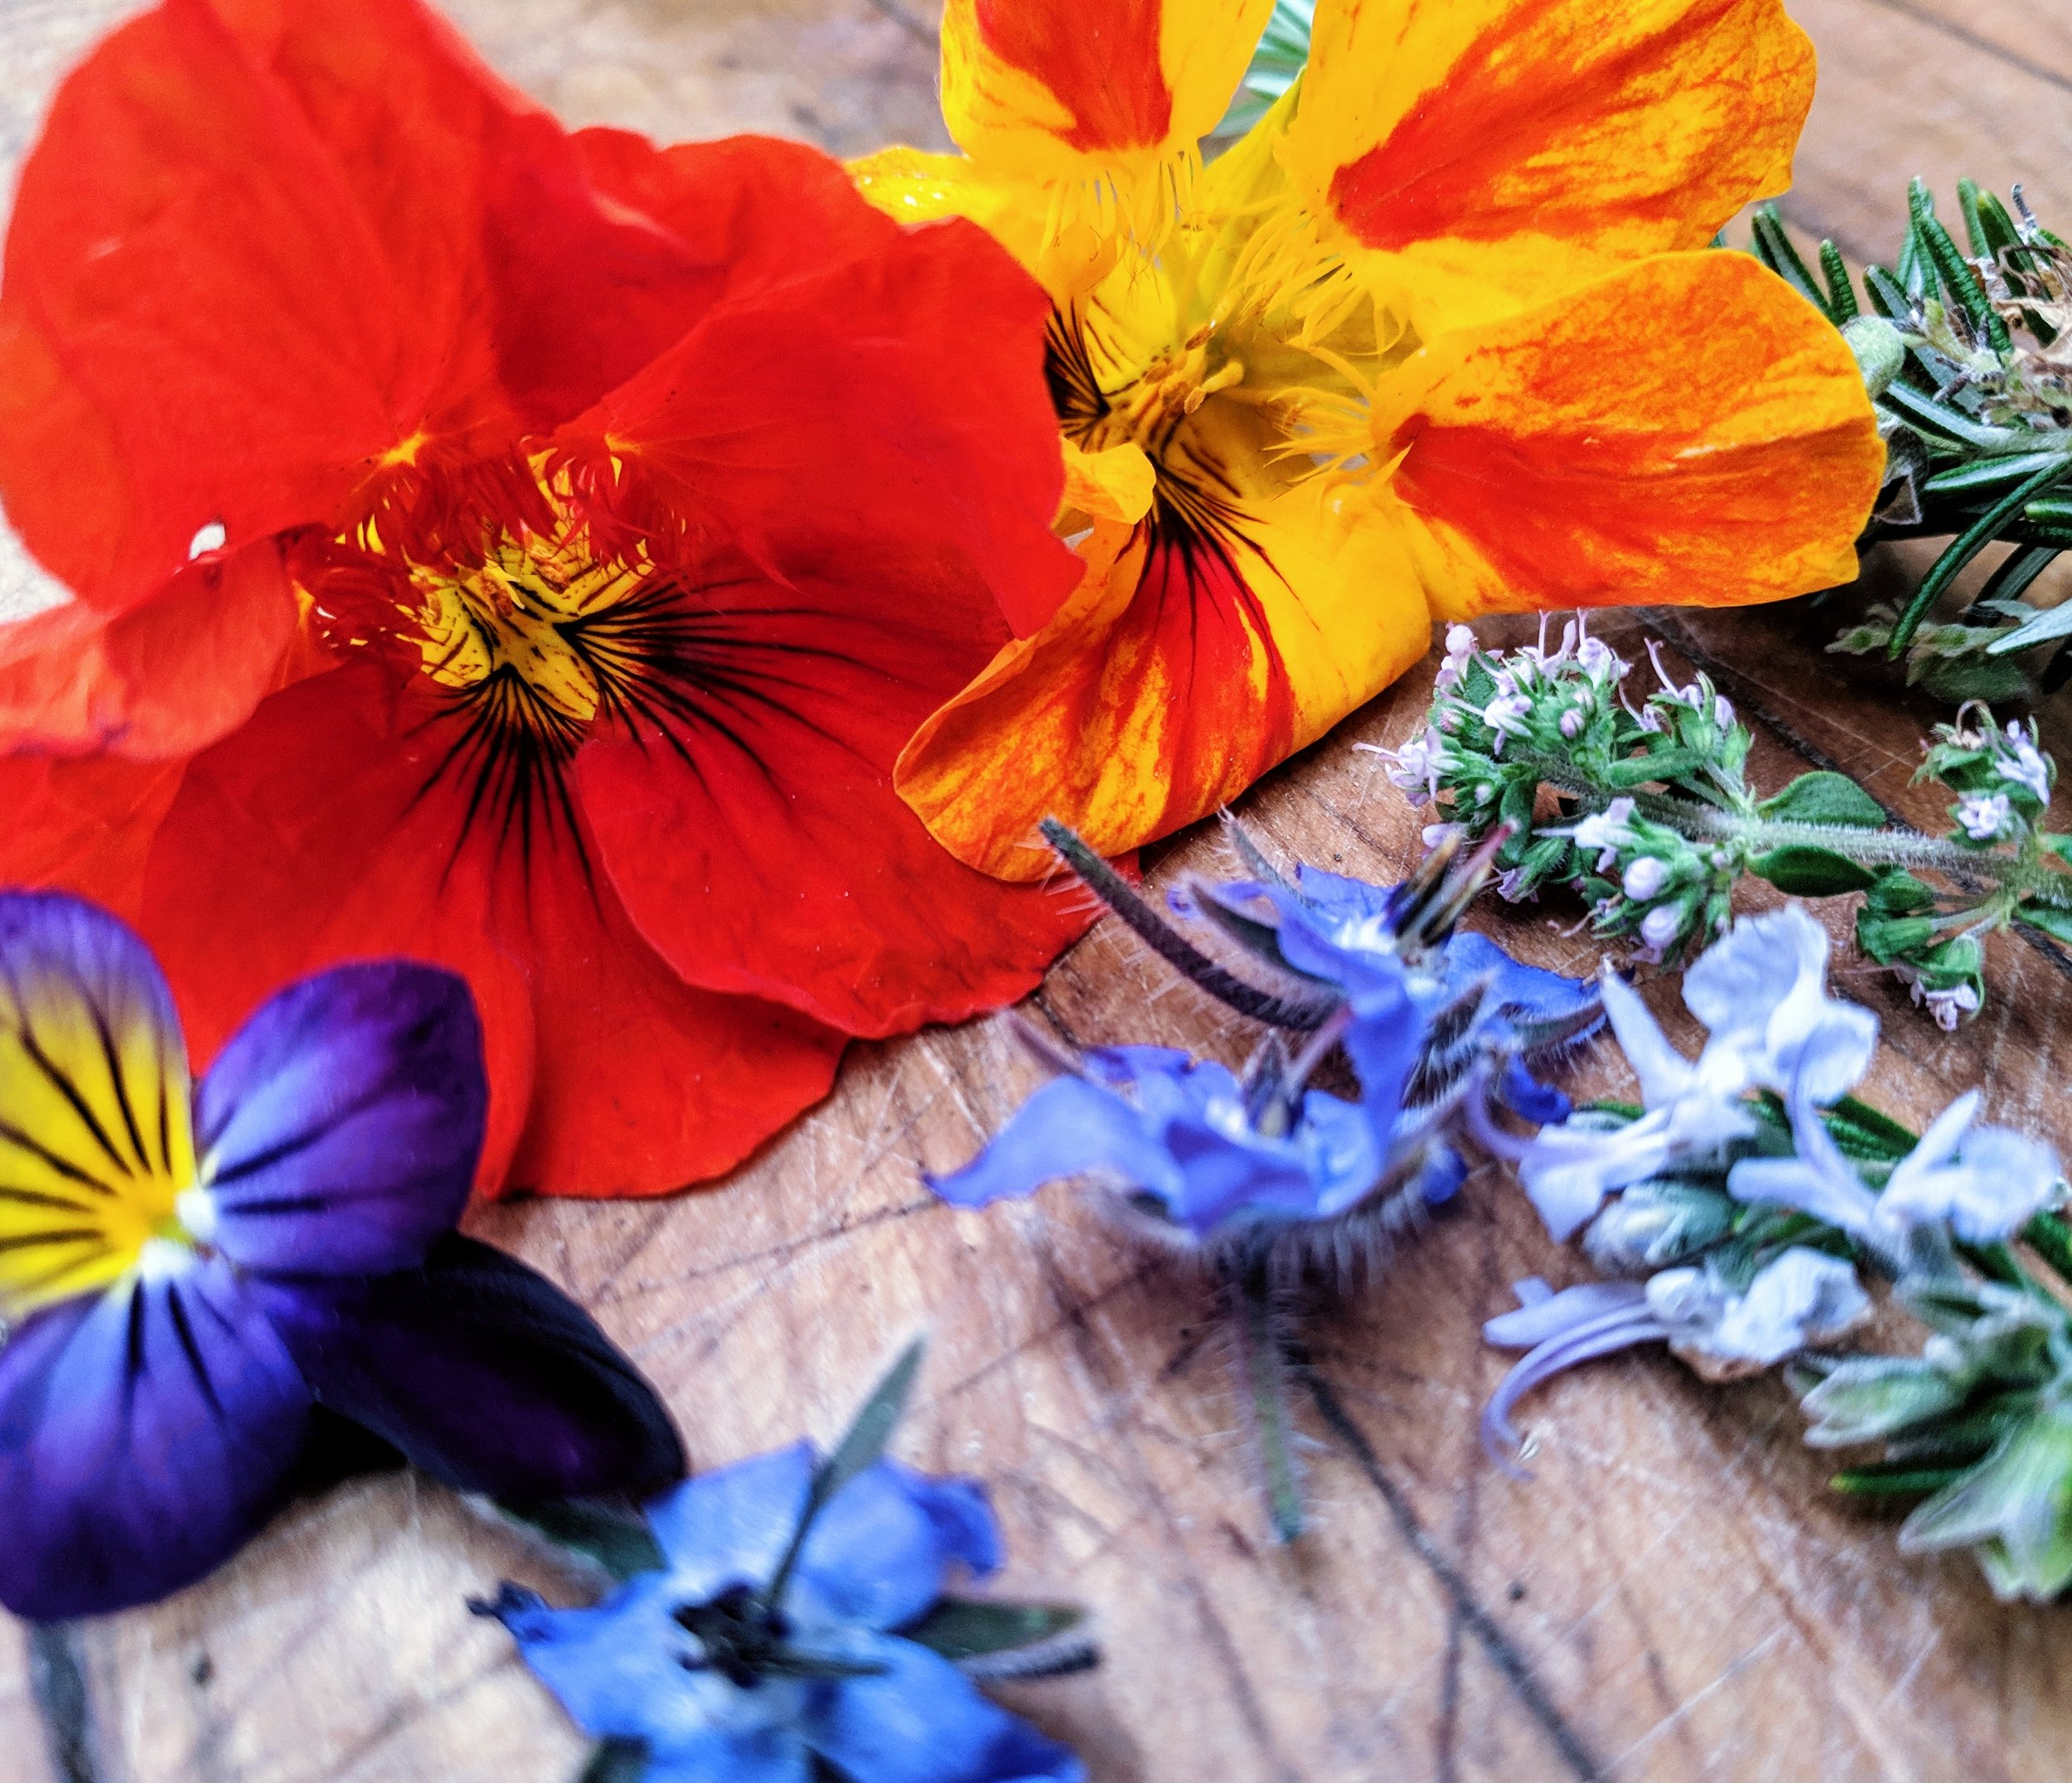 a sampler of edible flowers from our garden